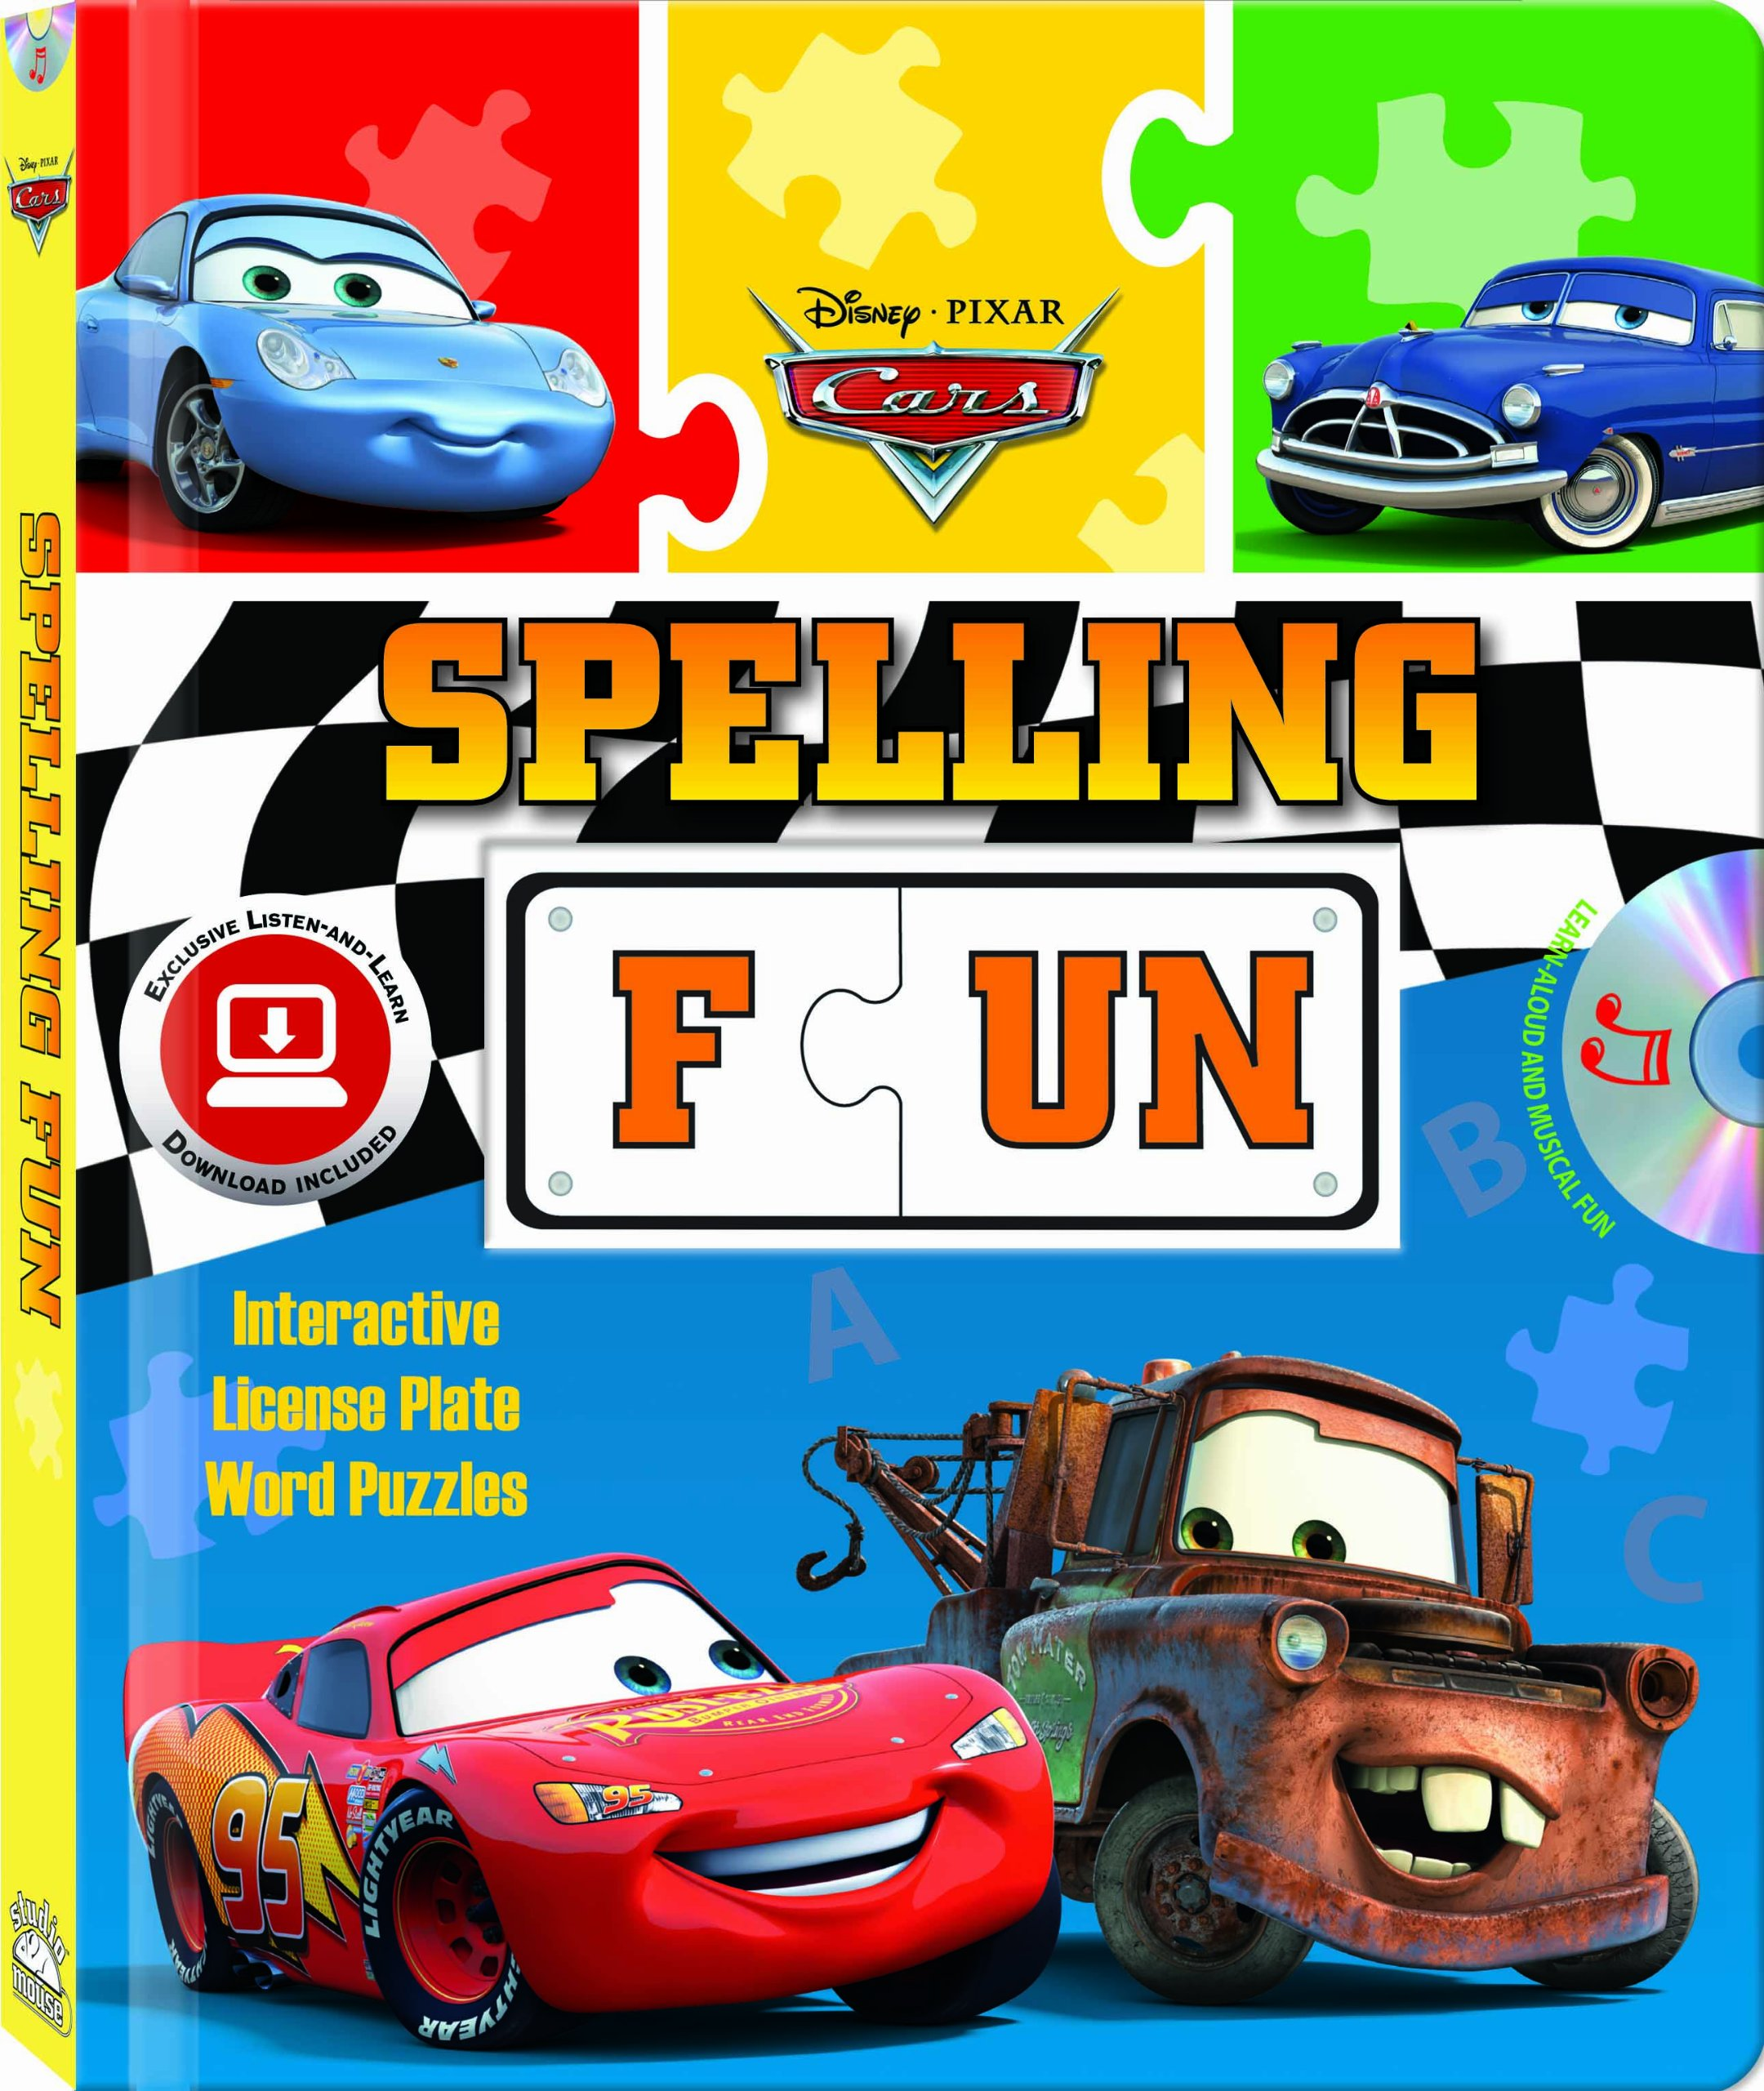 Disney/Pixar Cars Spelling Fun (Puzzle book with audio CD and easy-to-download  audiobook) (Disney: Pixar: Cars: Step by Step): Studio Mouse:  9781590699386: ...